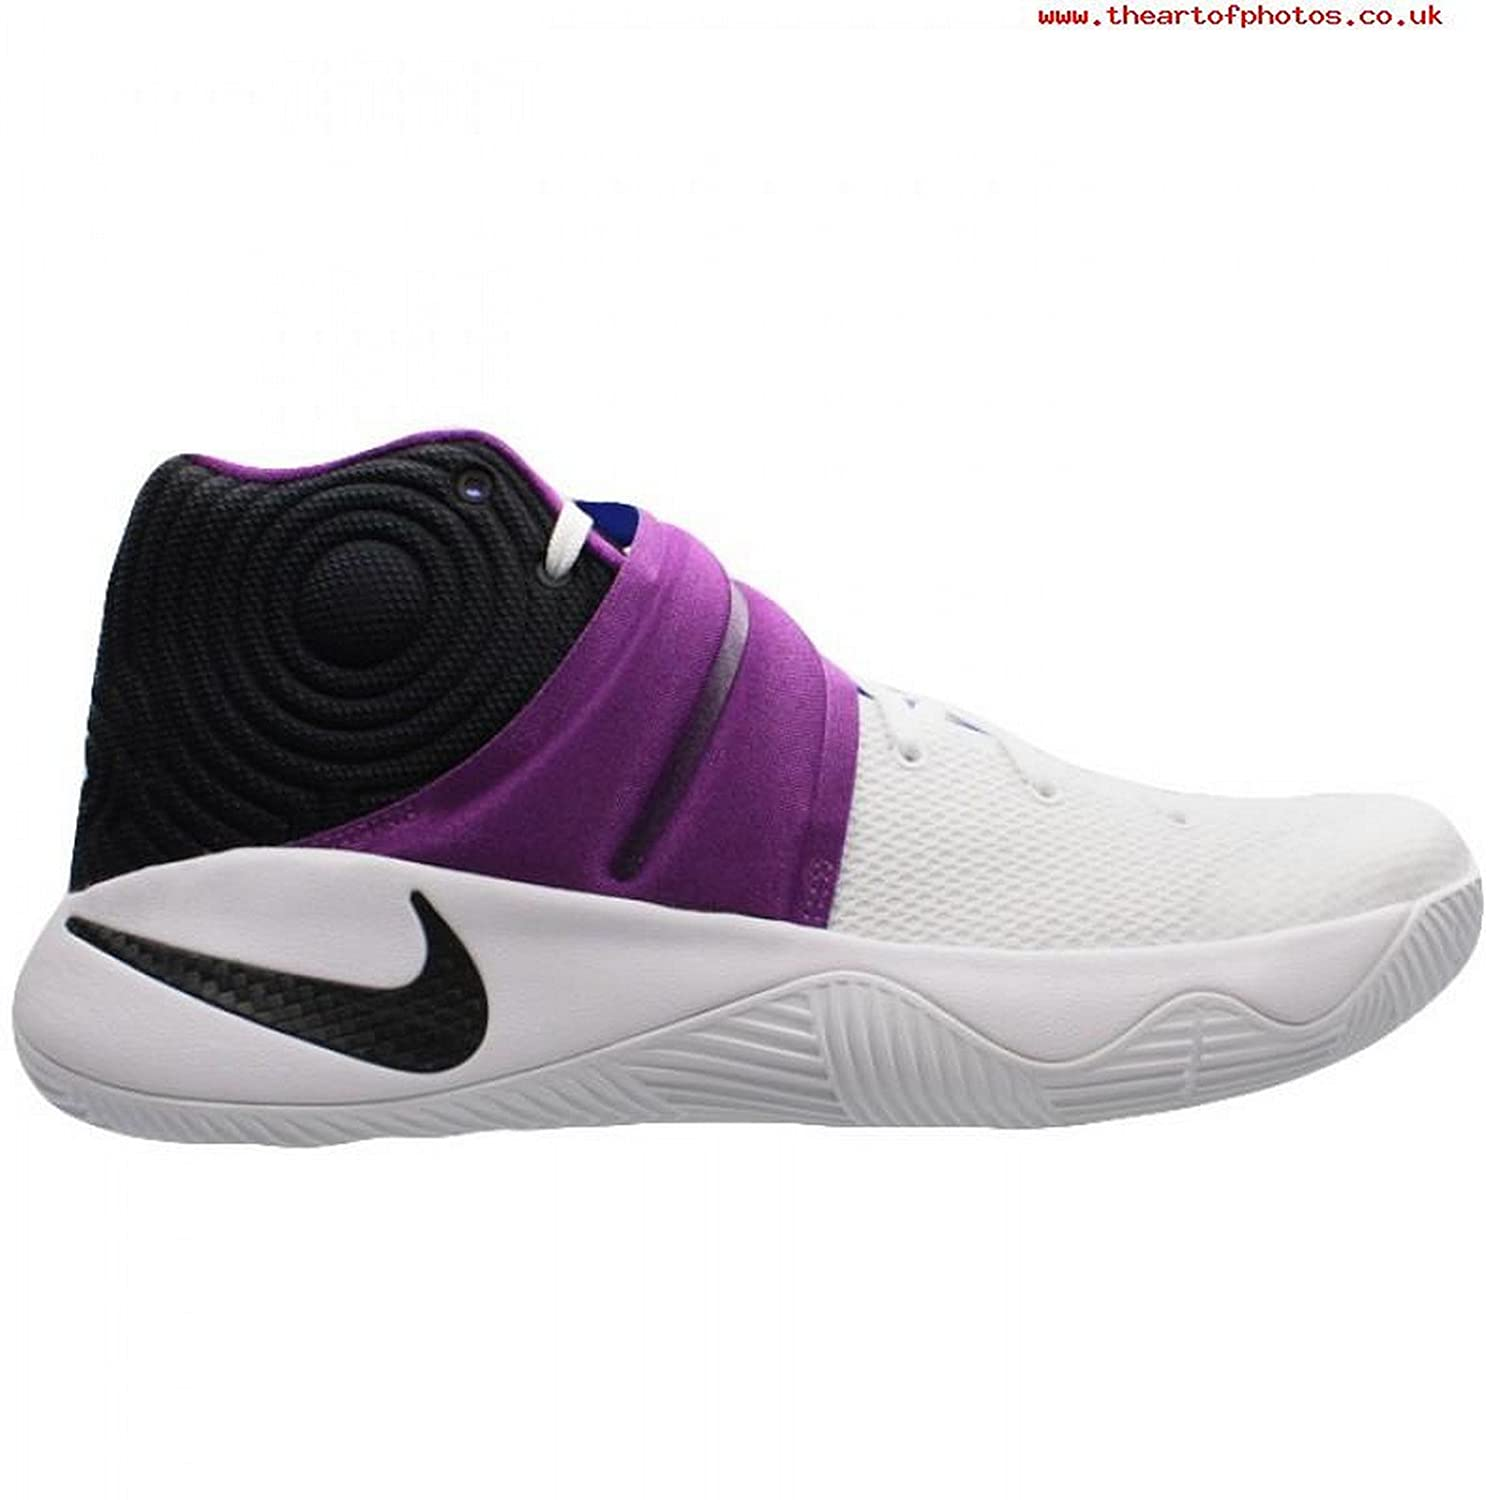 huge selection of 2b504 2d87a Amazon.com   NIKE Men s Kyrie 2 Basketball Shoes   Basketball